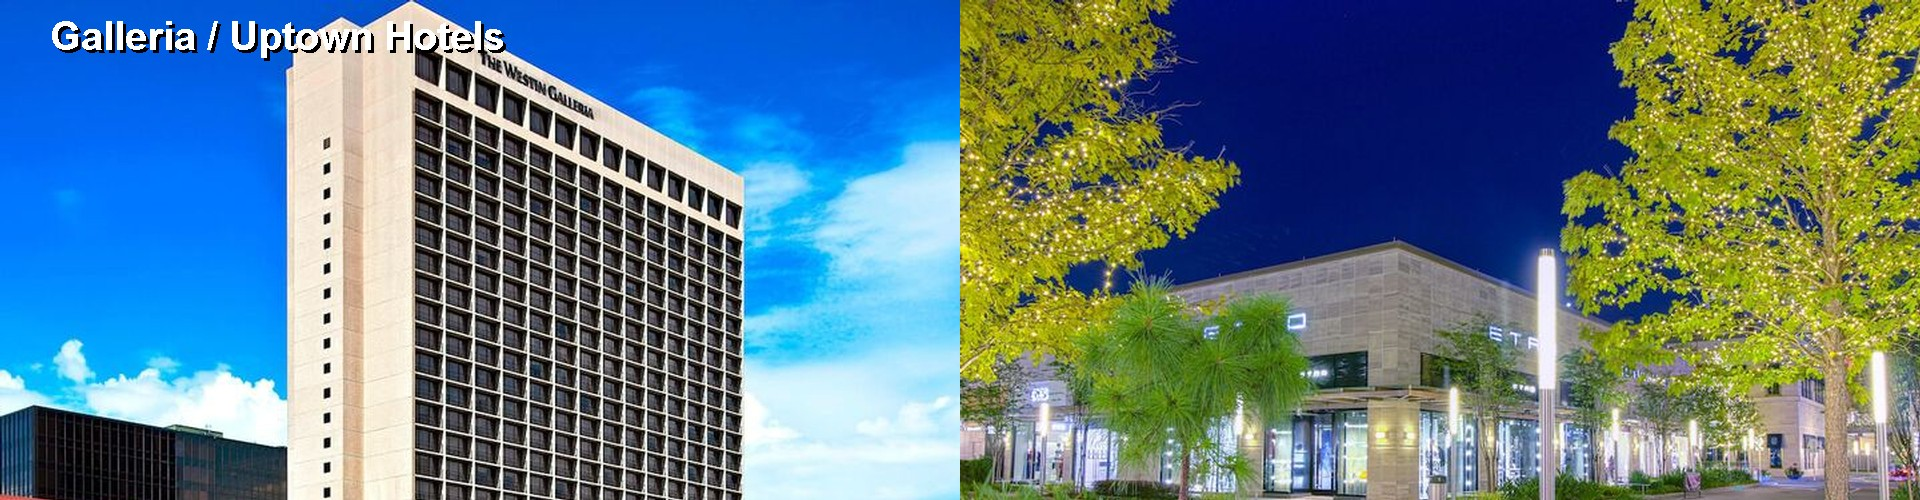 5 Best Hotels near Galleria / Uptown